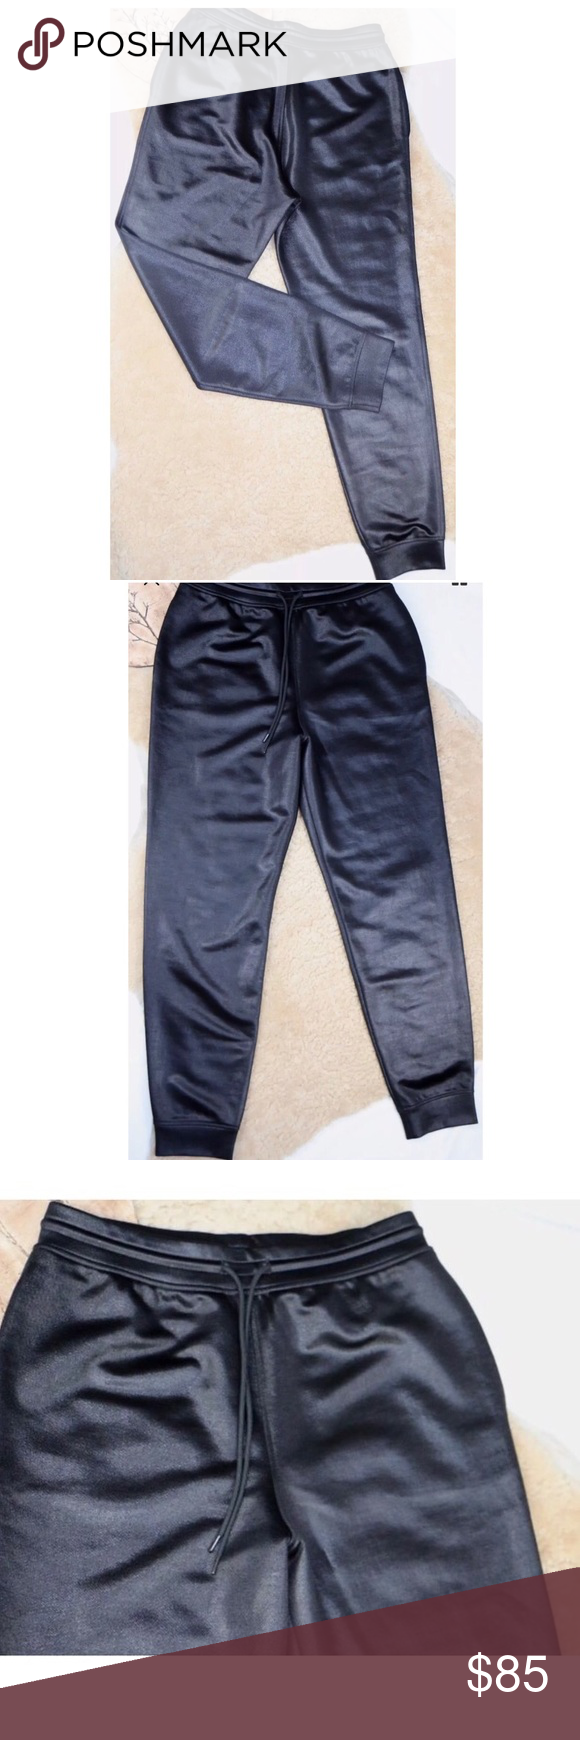 Alexander Wang joggers Black medium Medium and in perfect condition waist when not stretched one side is 15 inches and 40 1/2 inches long Alexander Wang Pants Track Pants & Joggers